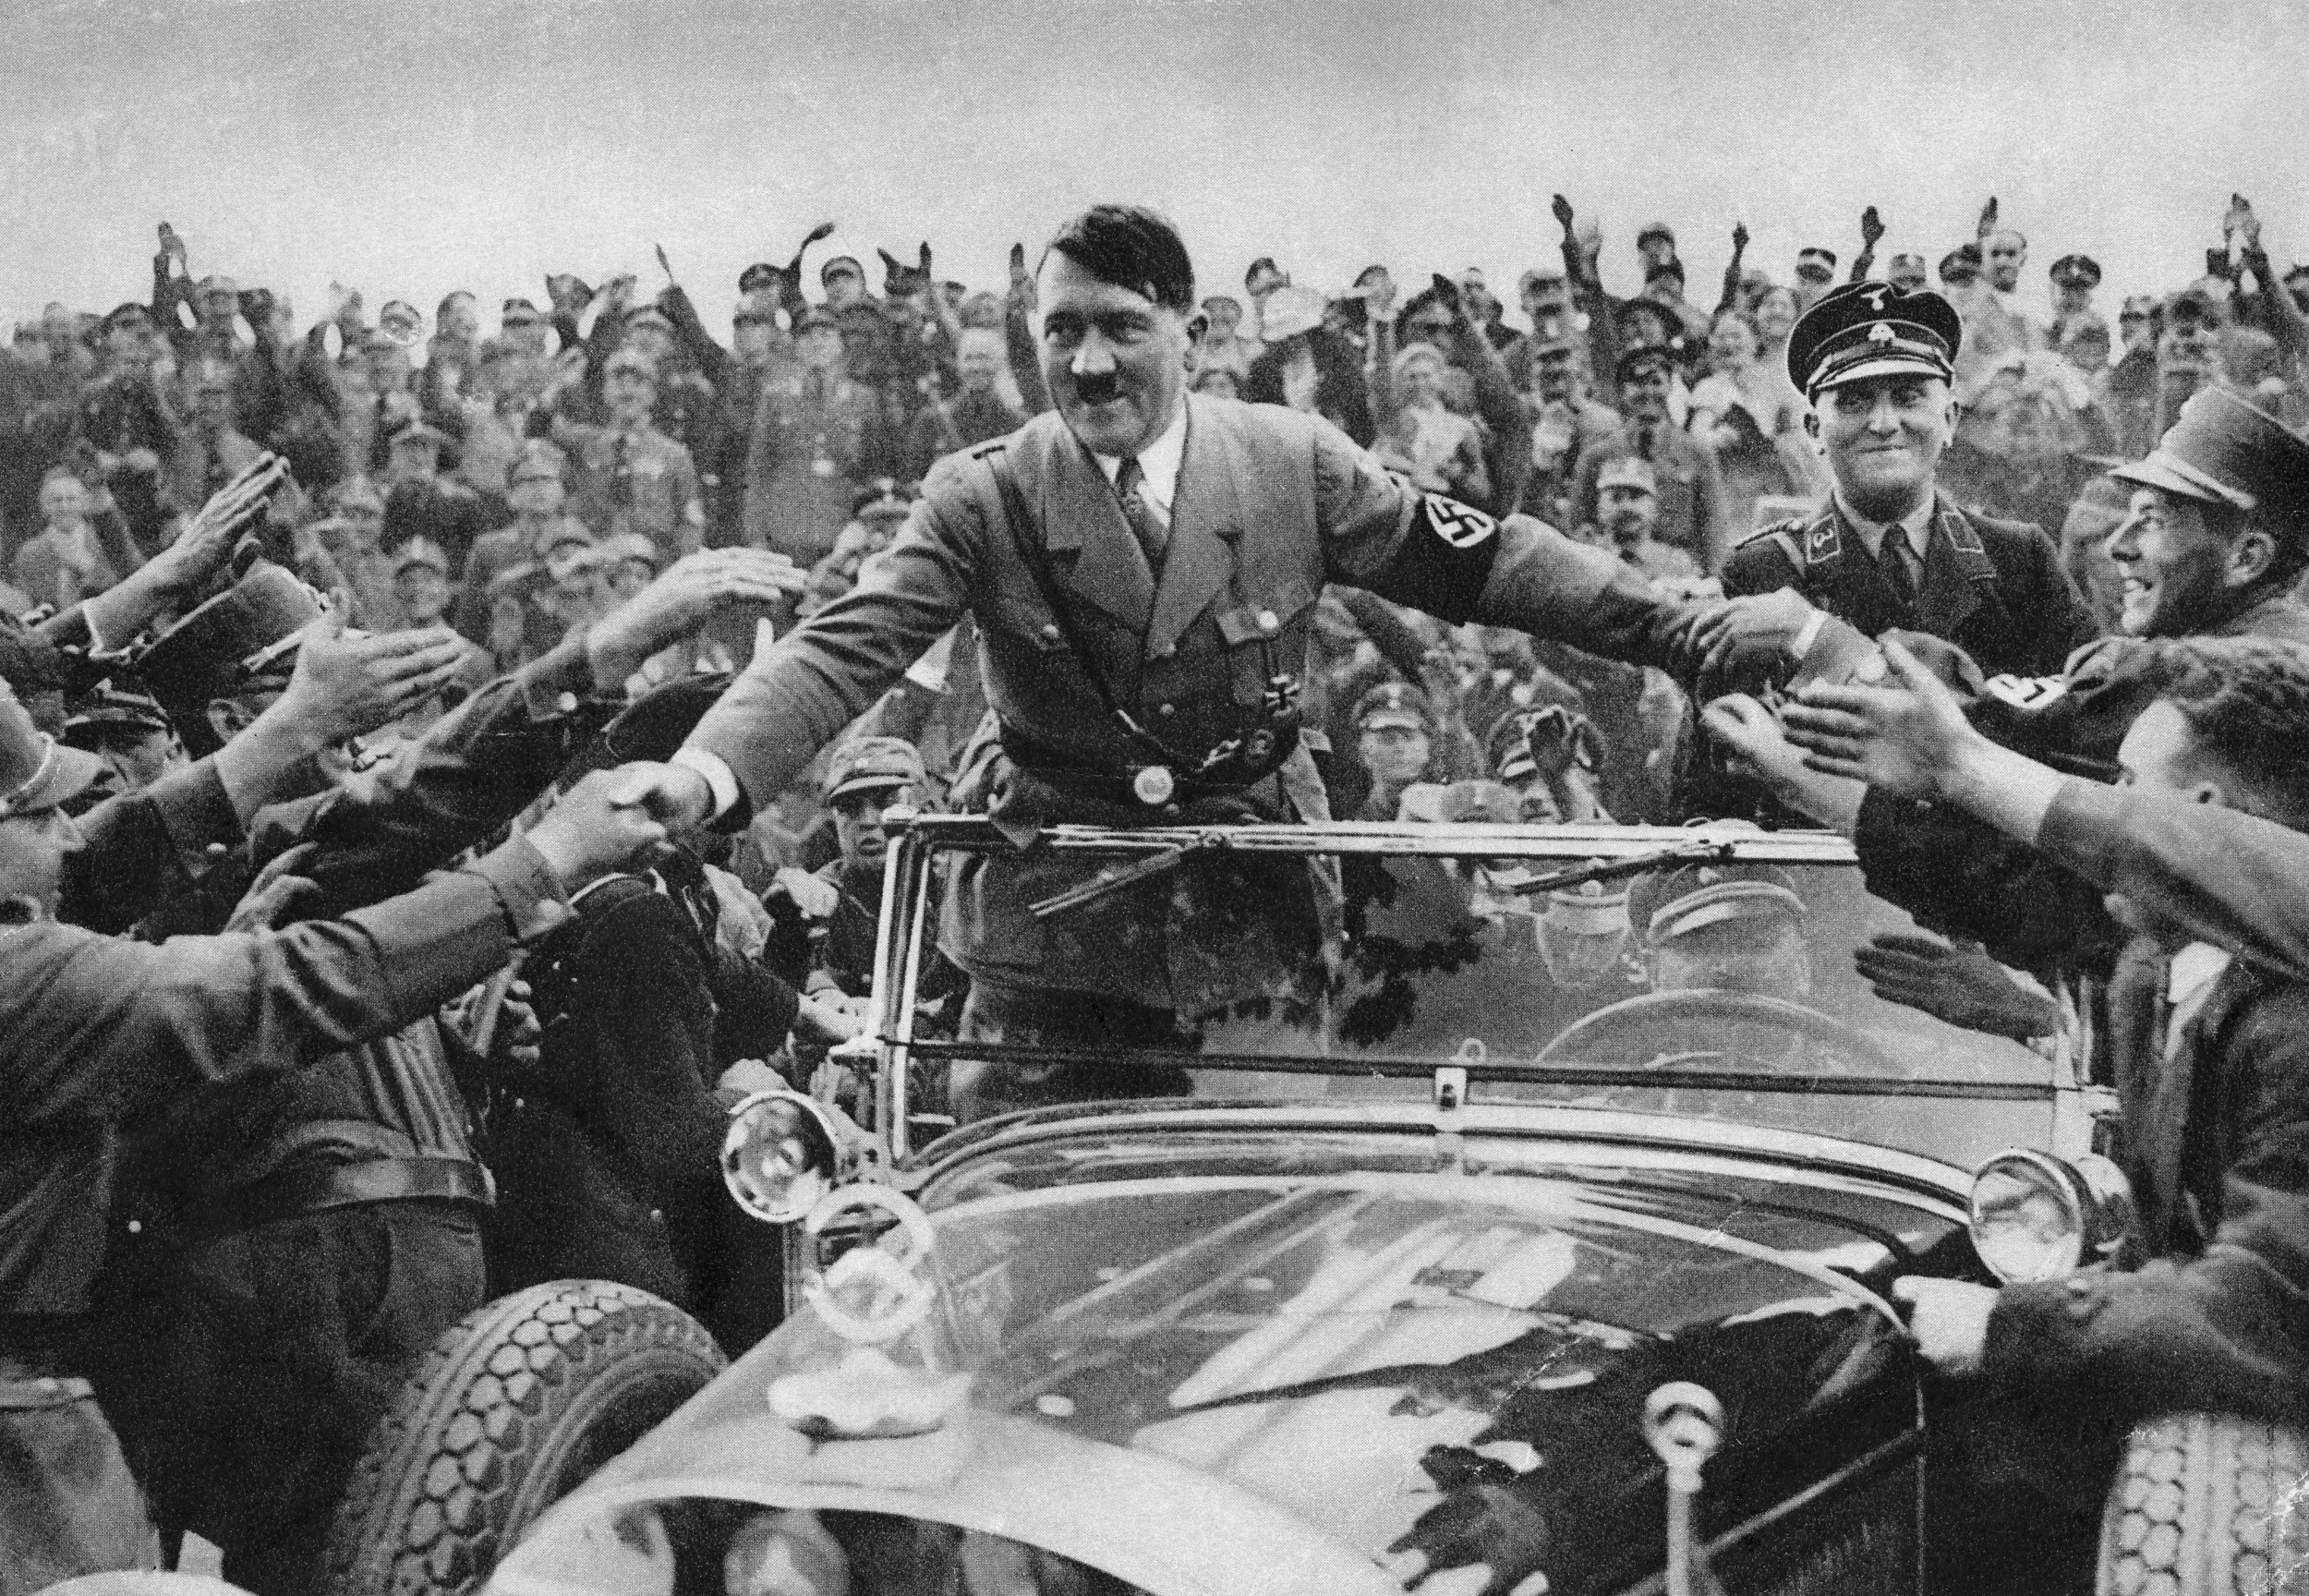 adolf hitler in crowd